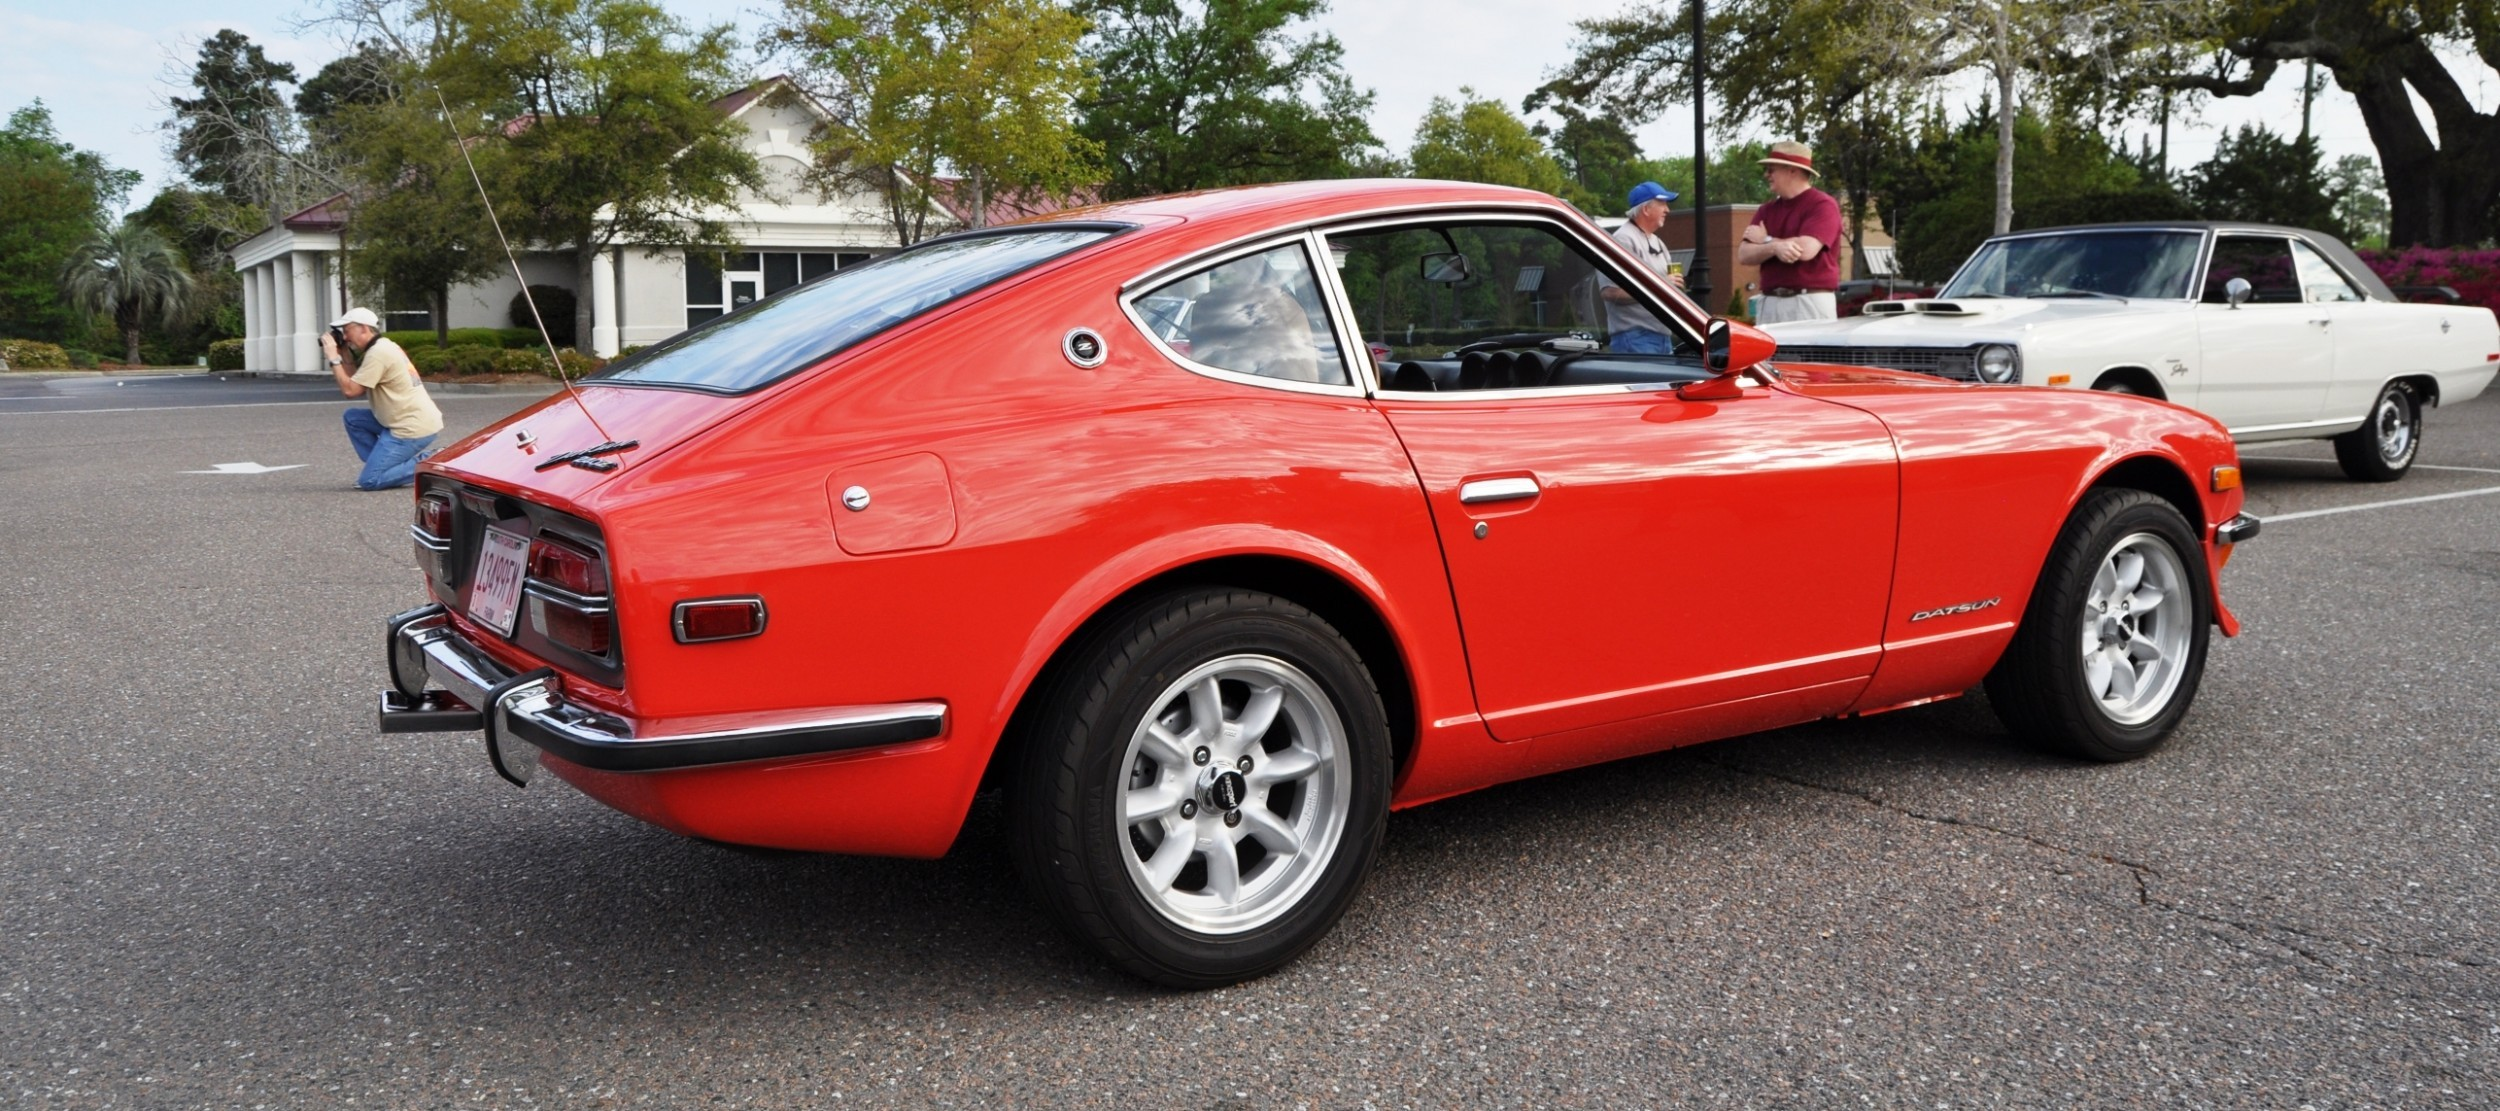 University Of Toyota >> Classic Sports Cars -- Datsun 240Z at Cars & Coffee ...